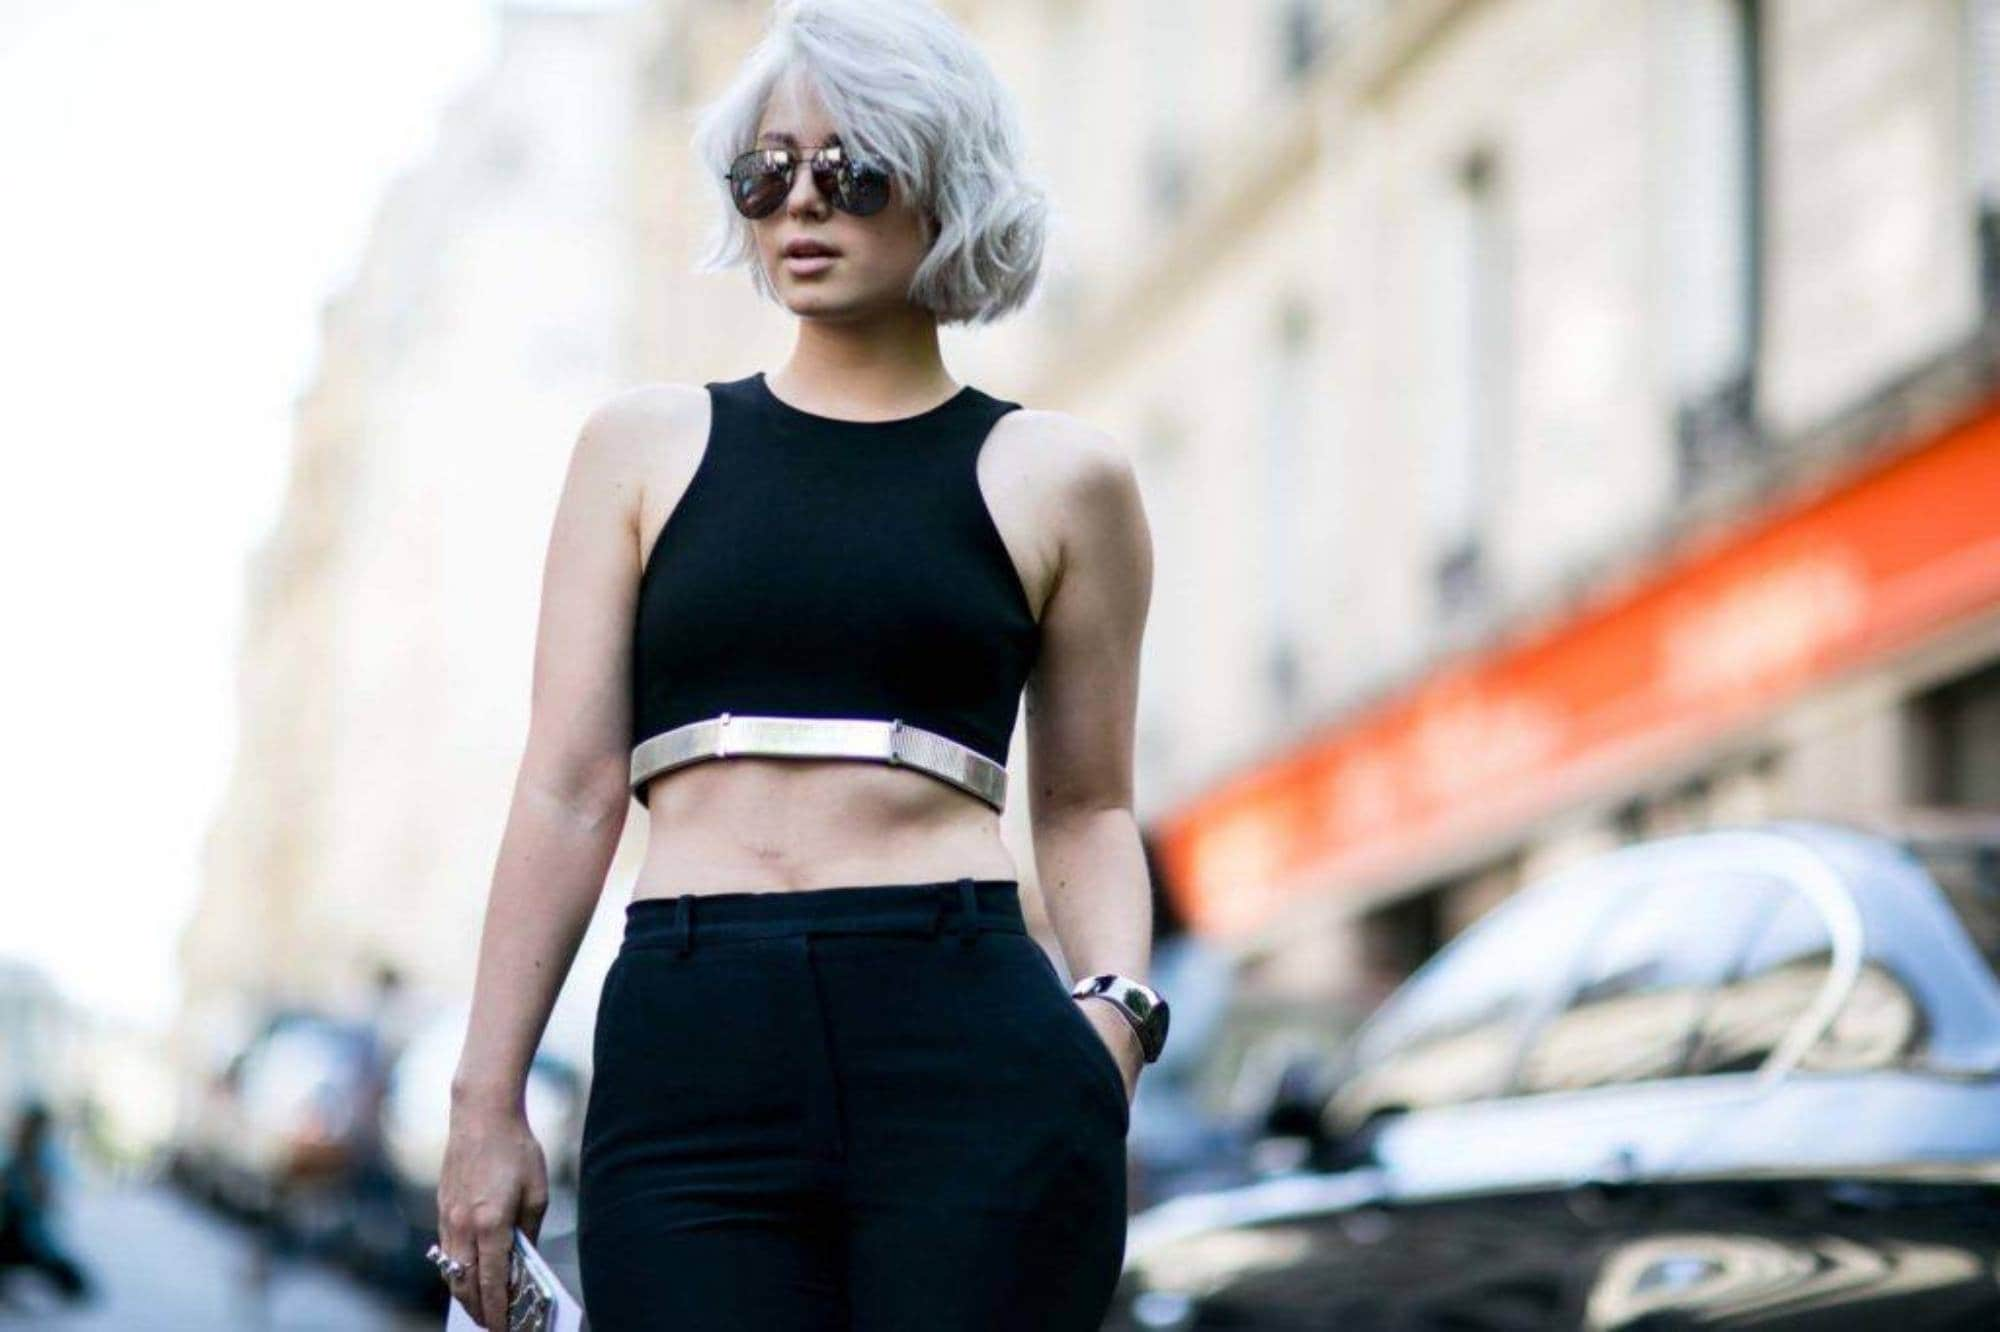 Bleached hair colors: woman with icy silver short bob wearing black